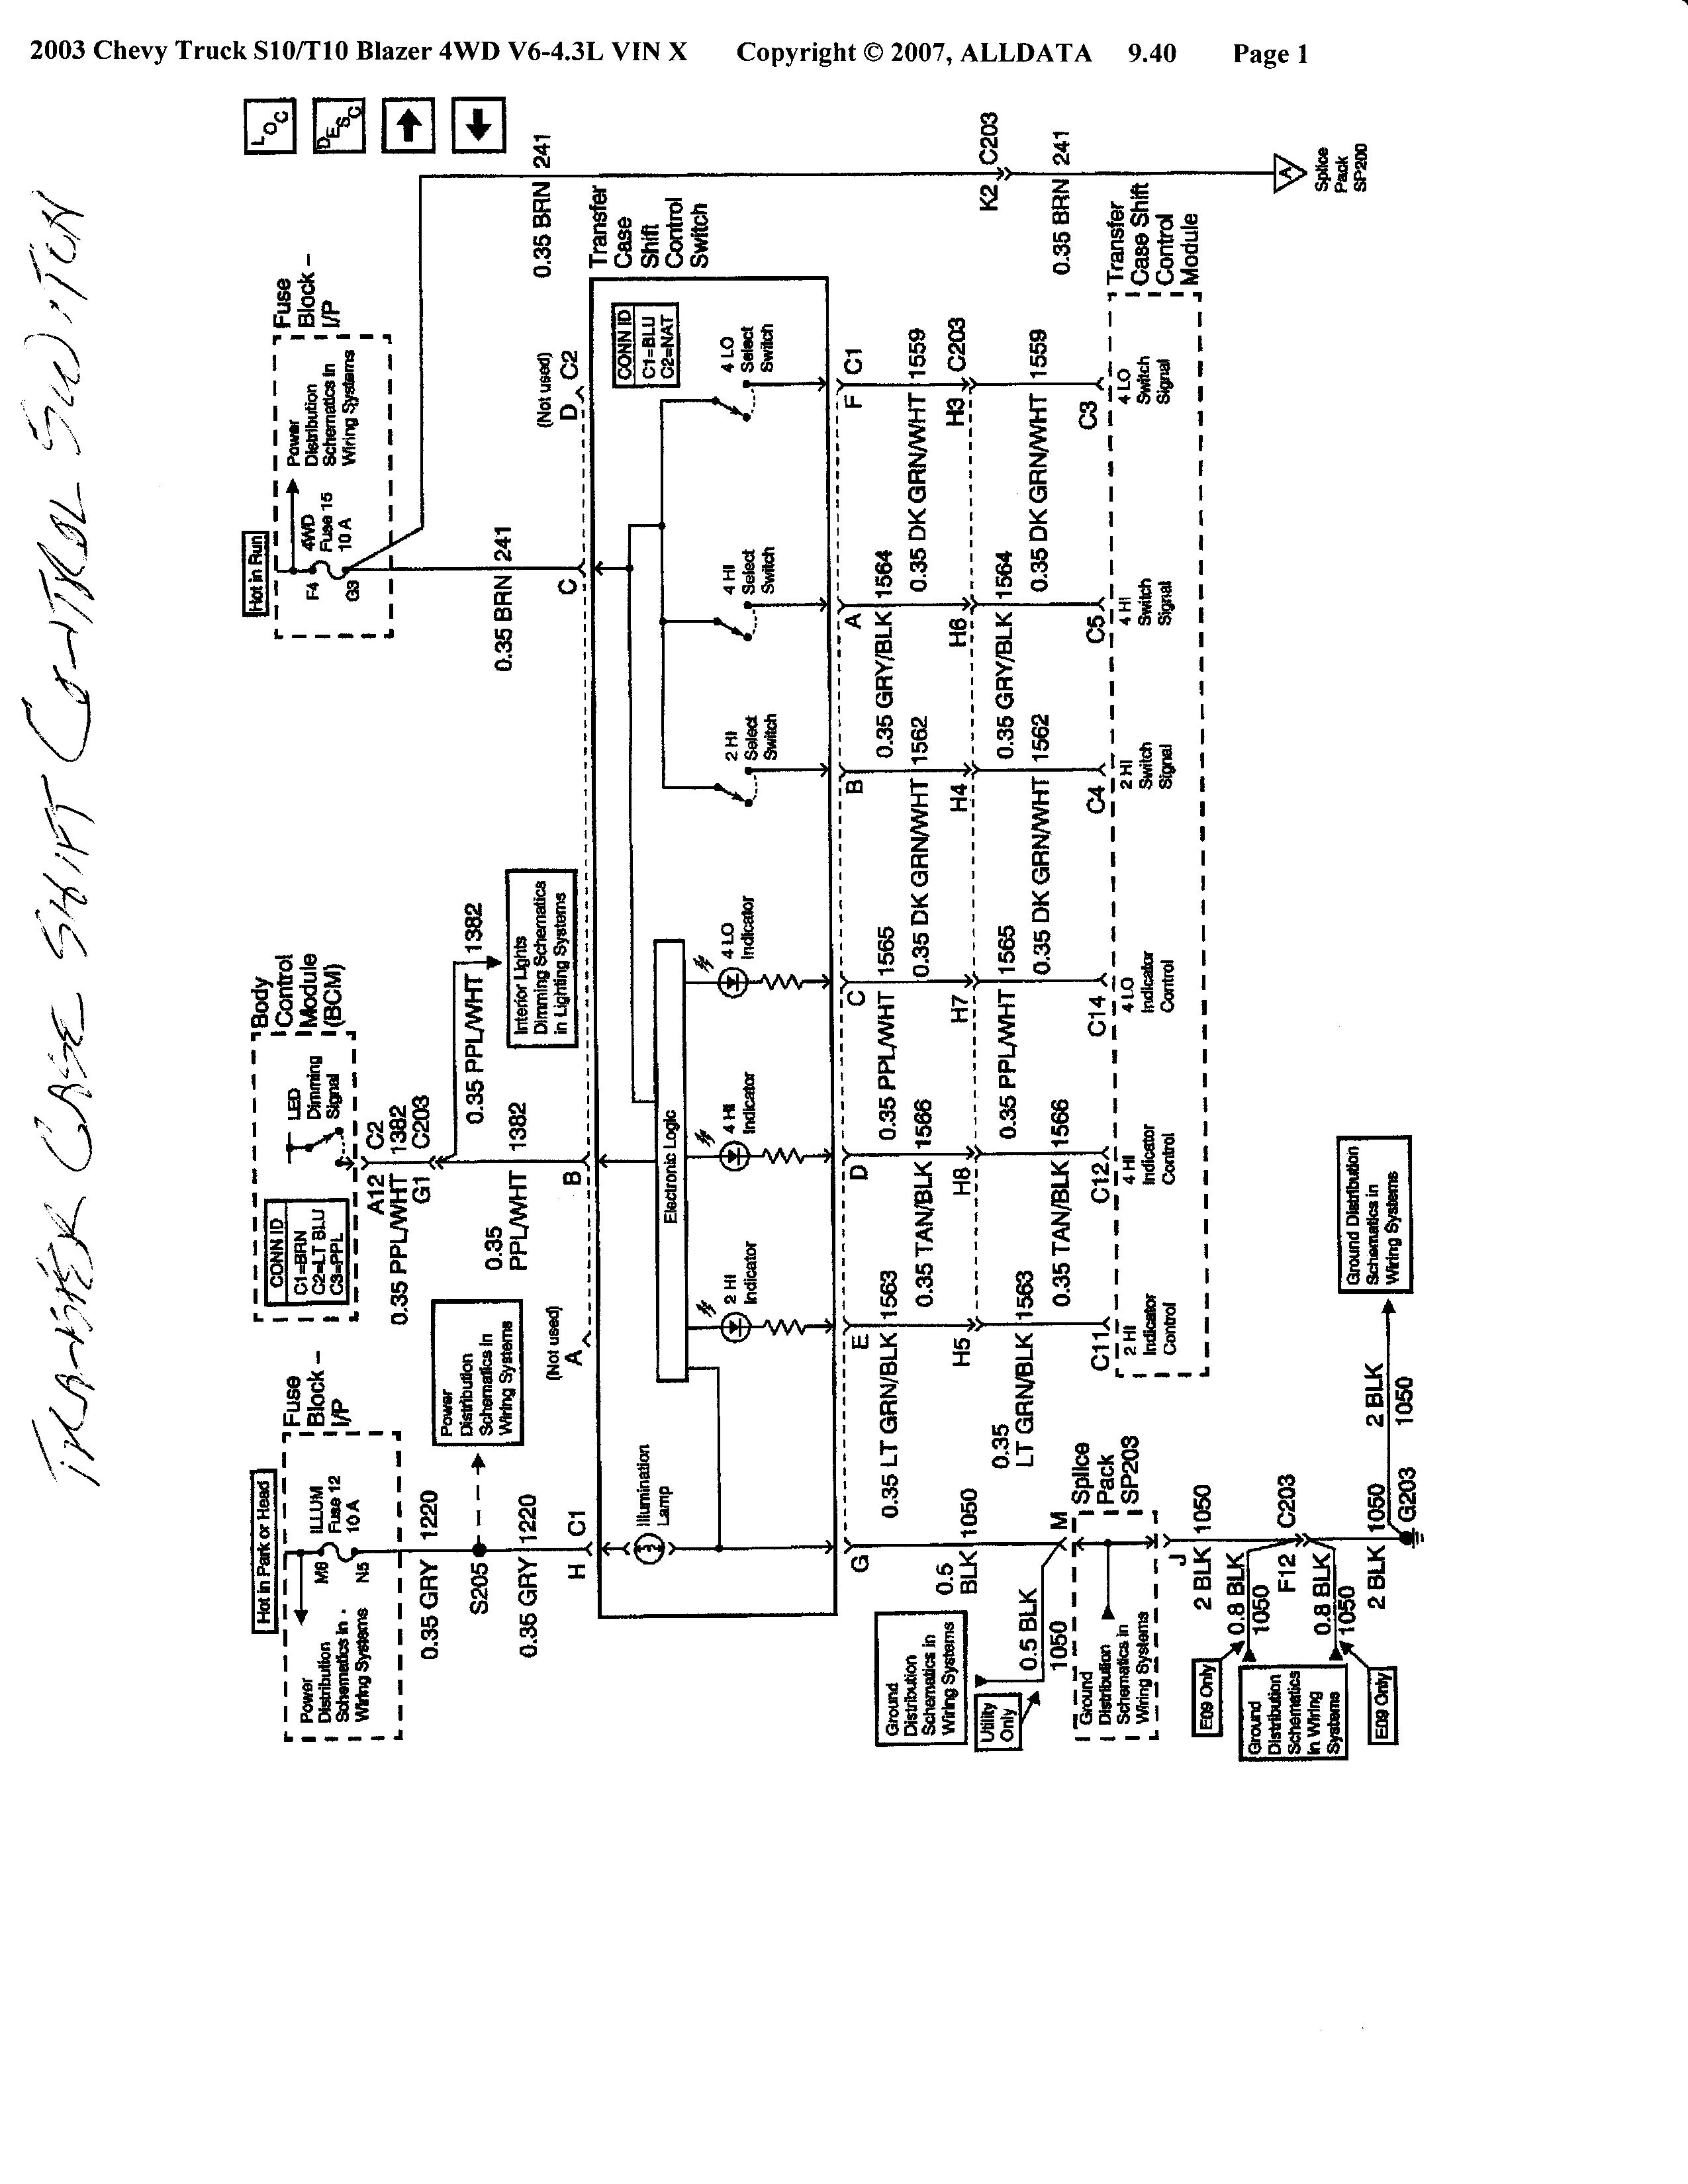 2000 Chevy Blazer Engine Diagram Archive Of Automotive Wiring S10 4wd Just Data Rh Ag Skiphire Co Uk